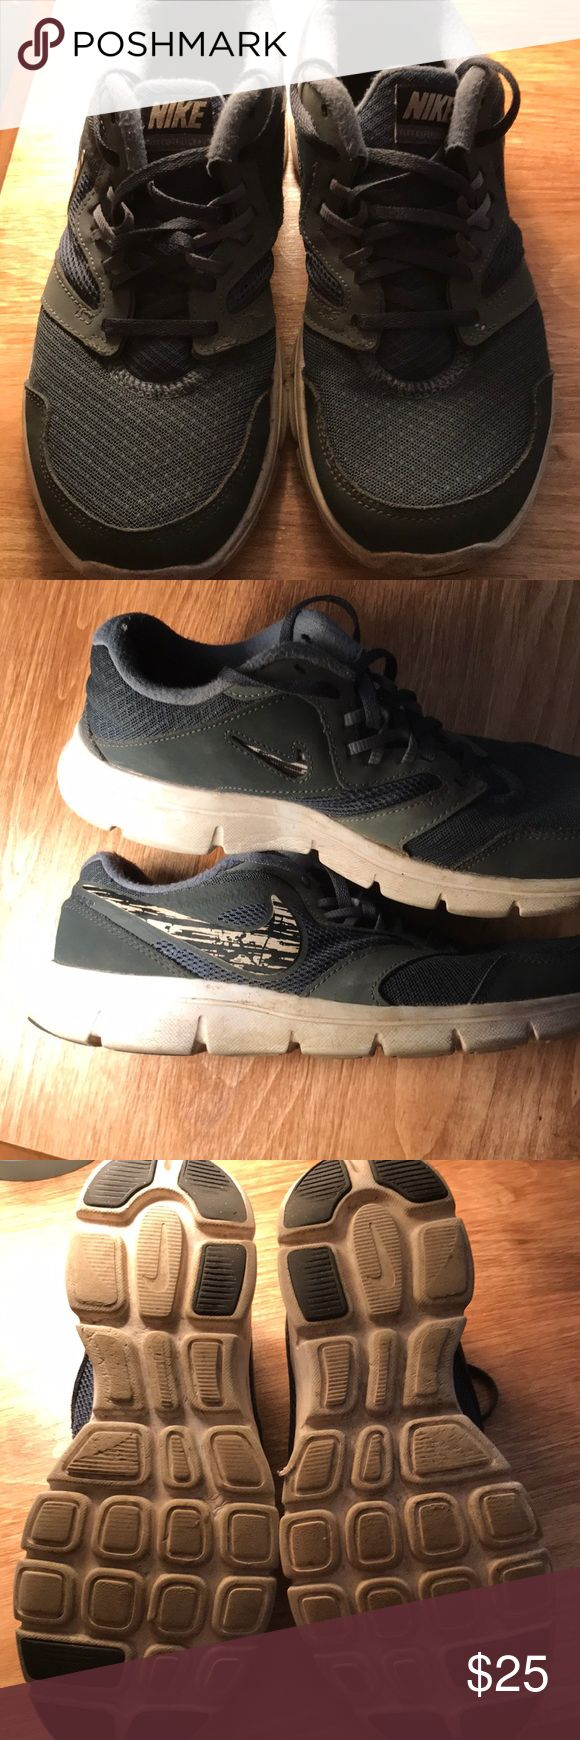 Boys Nike running shoes size 7 youth Used but still nice shoes no rips or stains Nike Shoes Sneakers